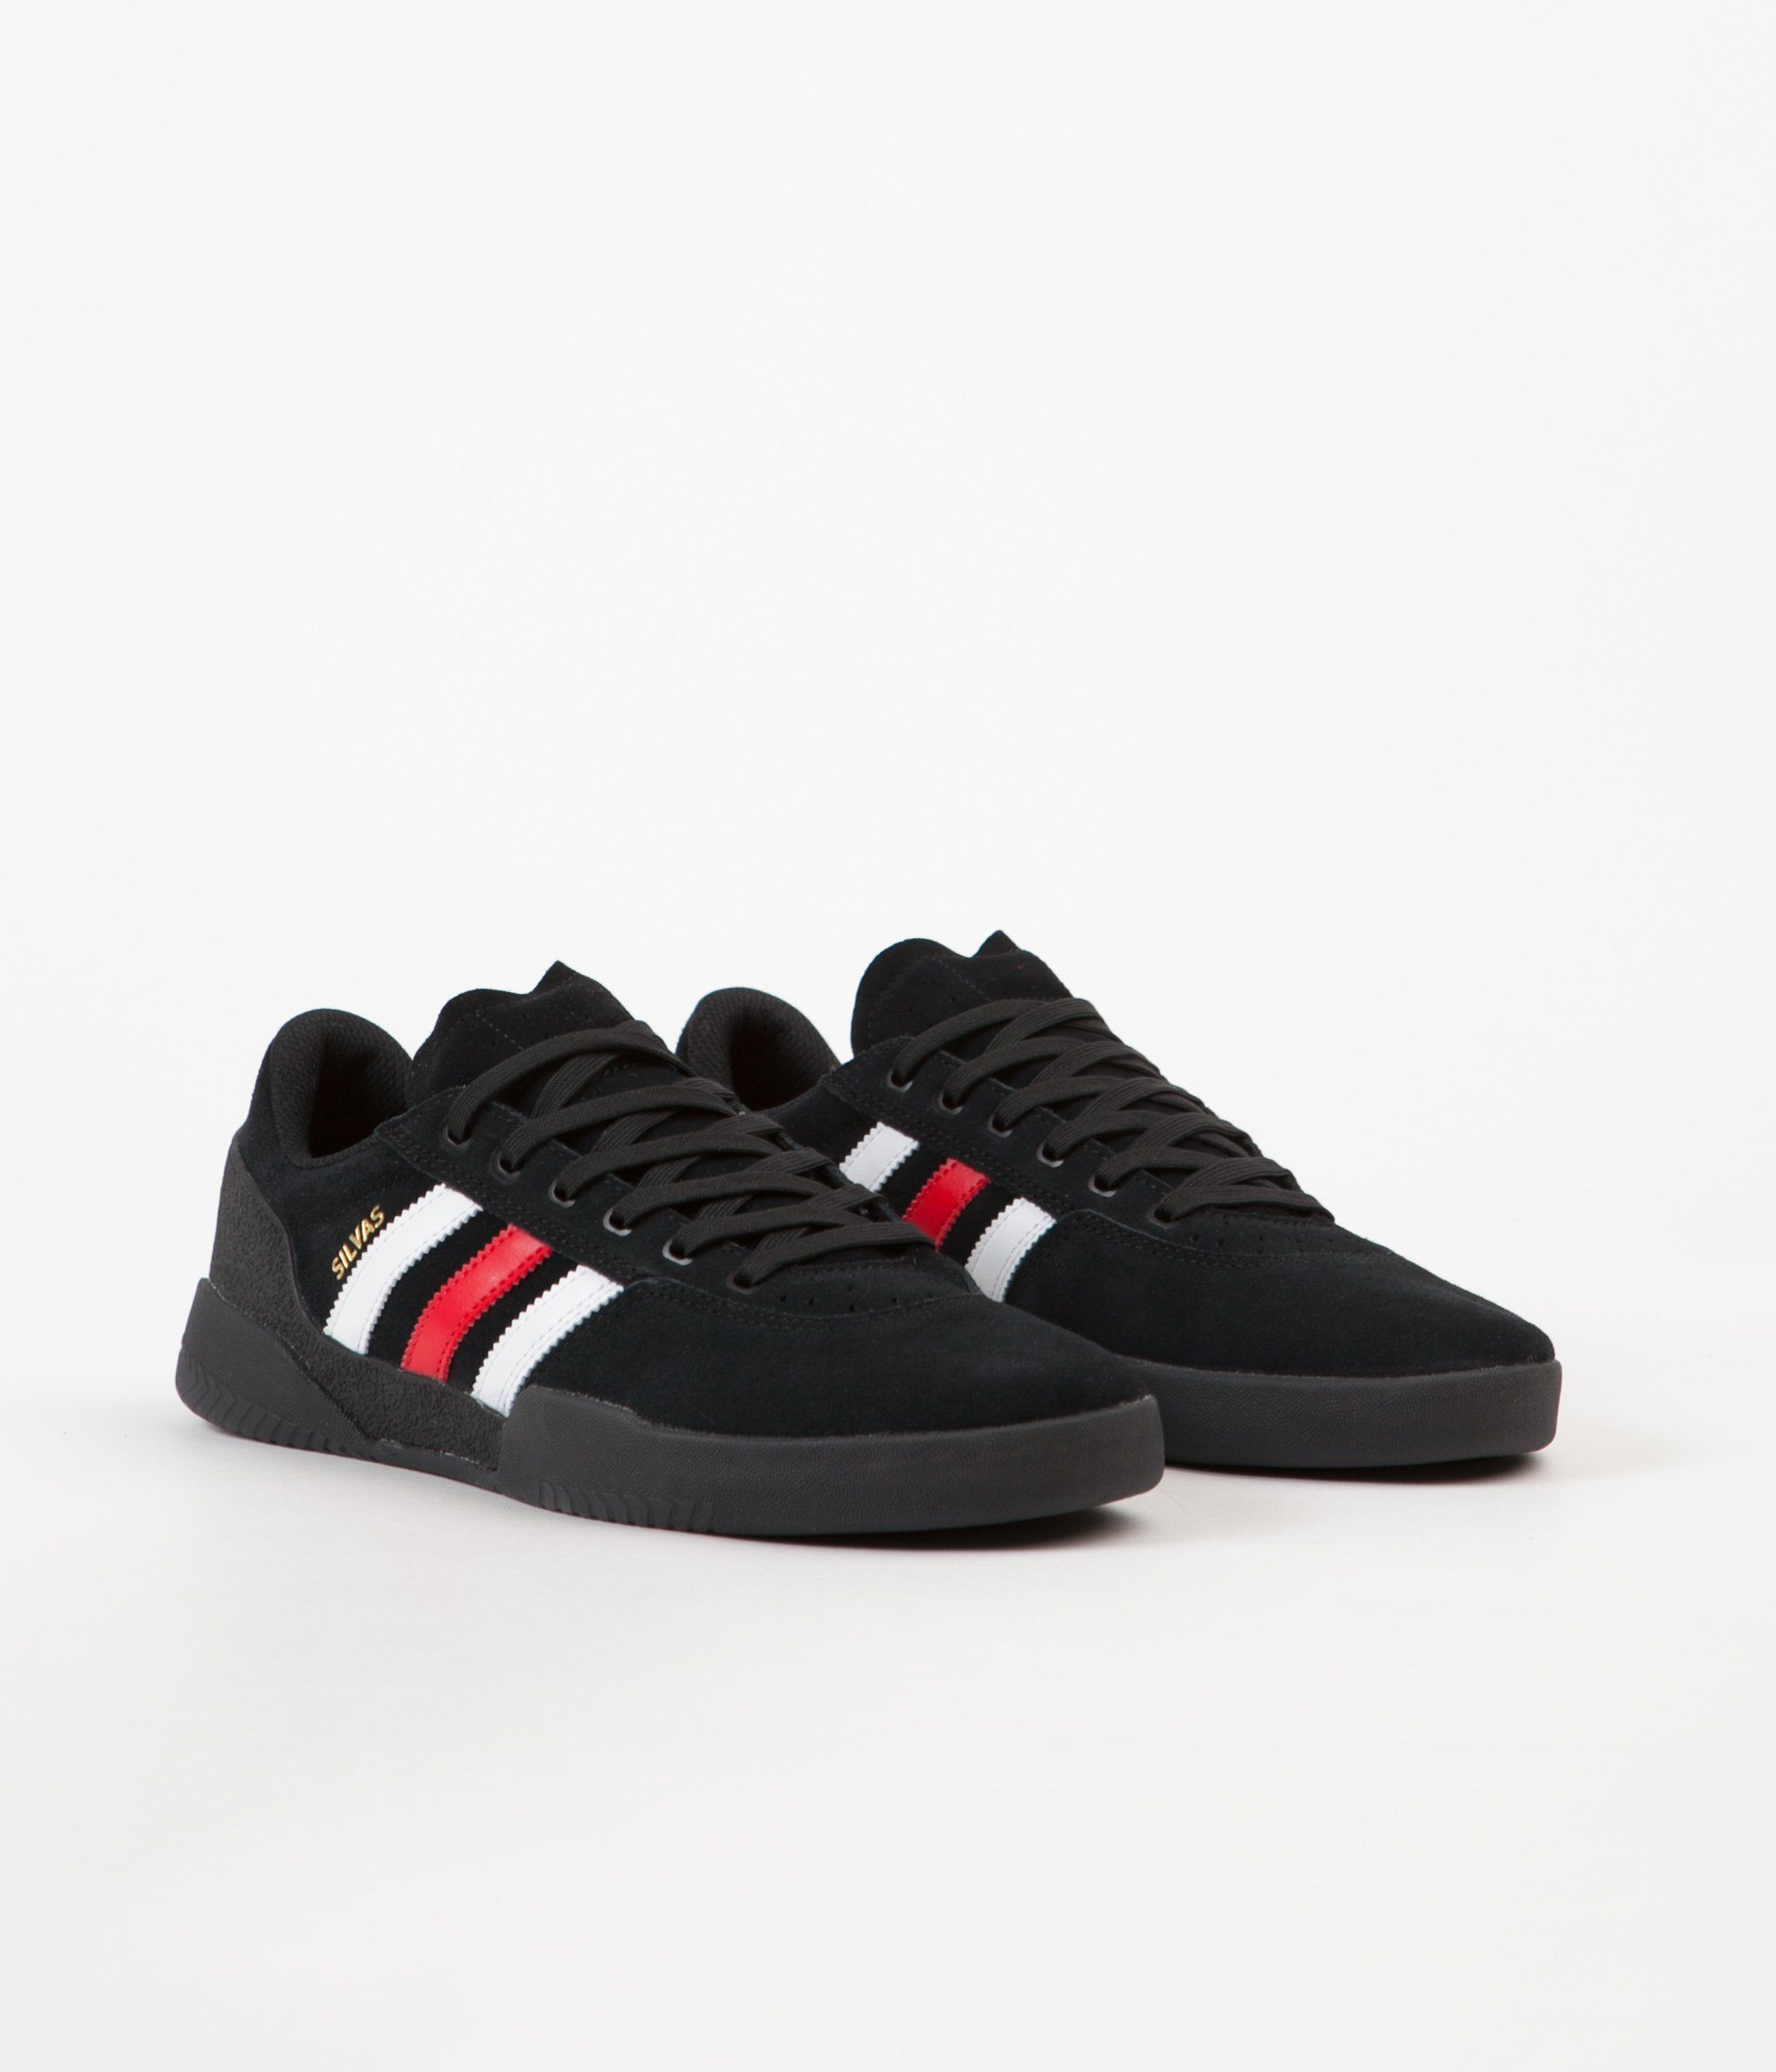 release date c1876 0704b Adidas Miles Silvas City Cup Shoes - Core Black   Scarlet   FTW White